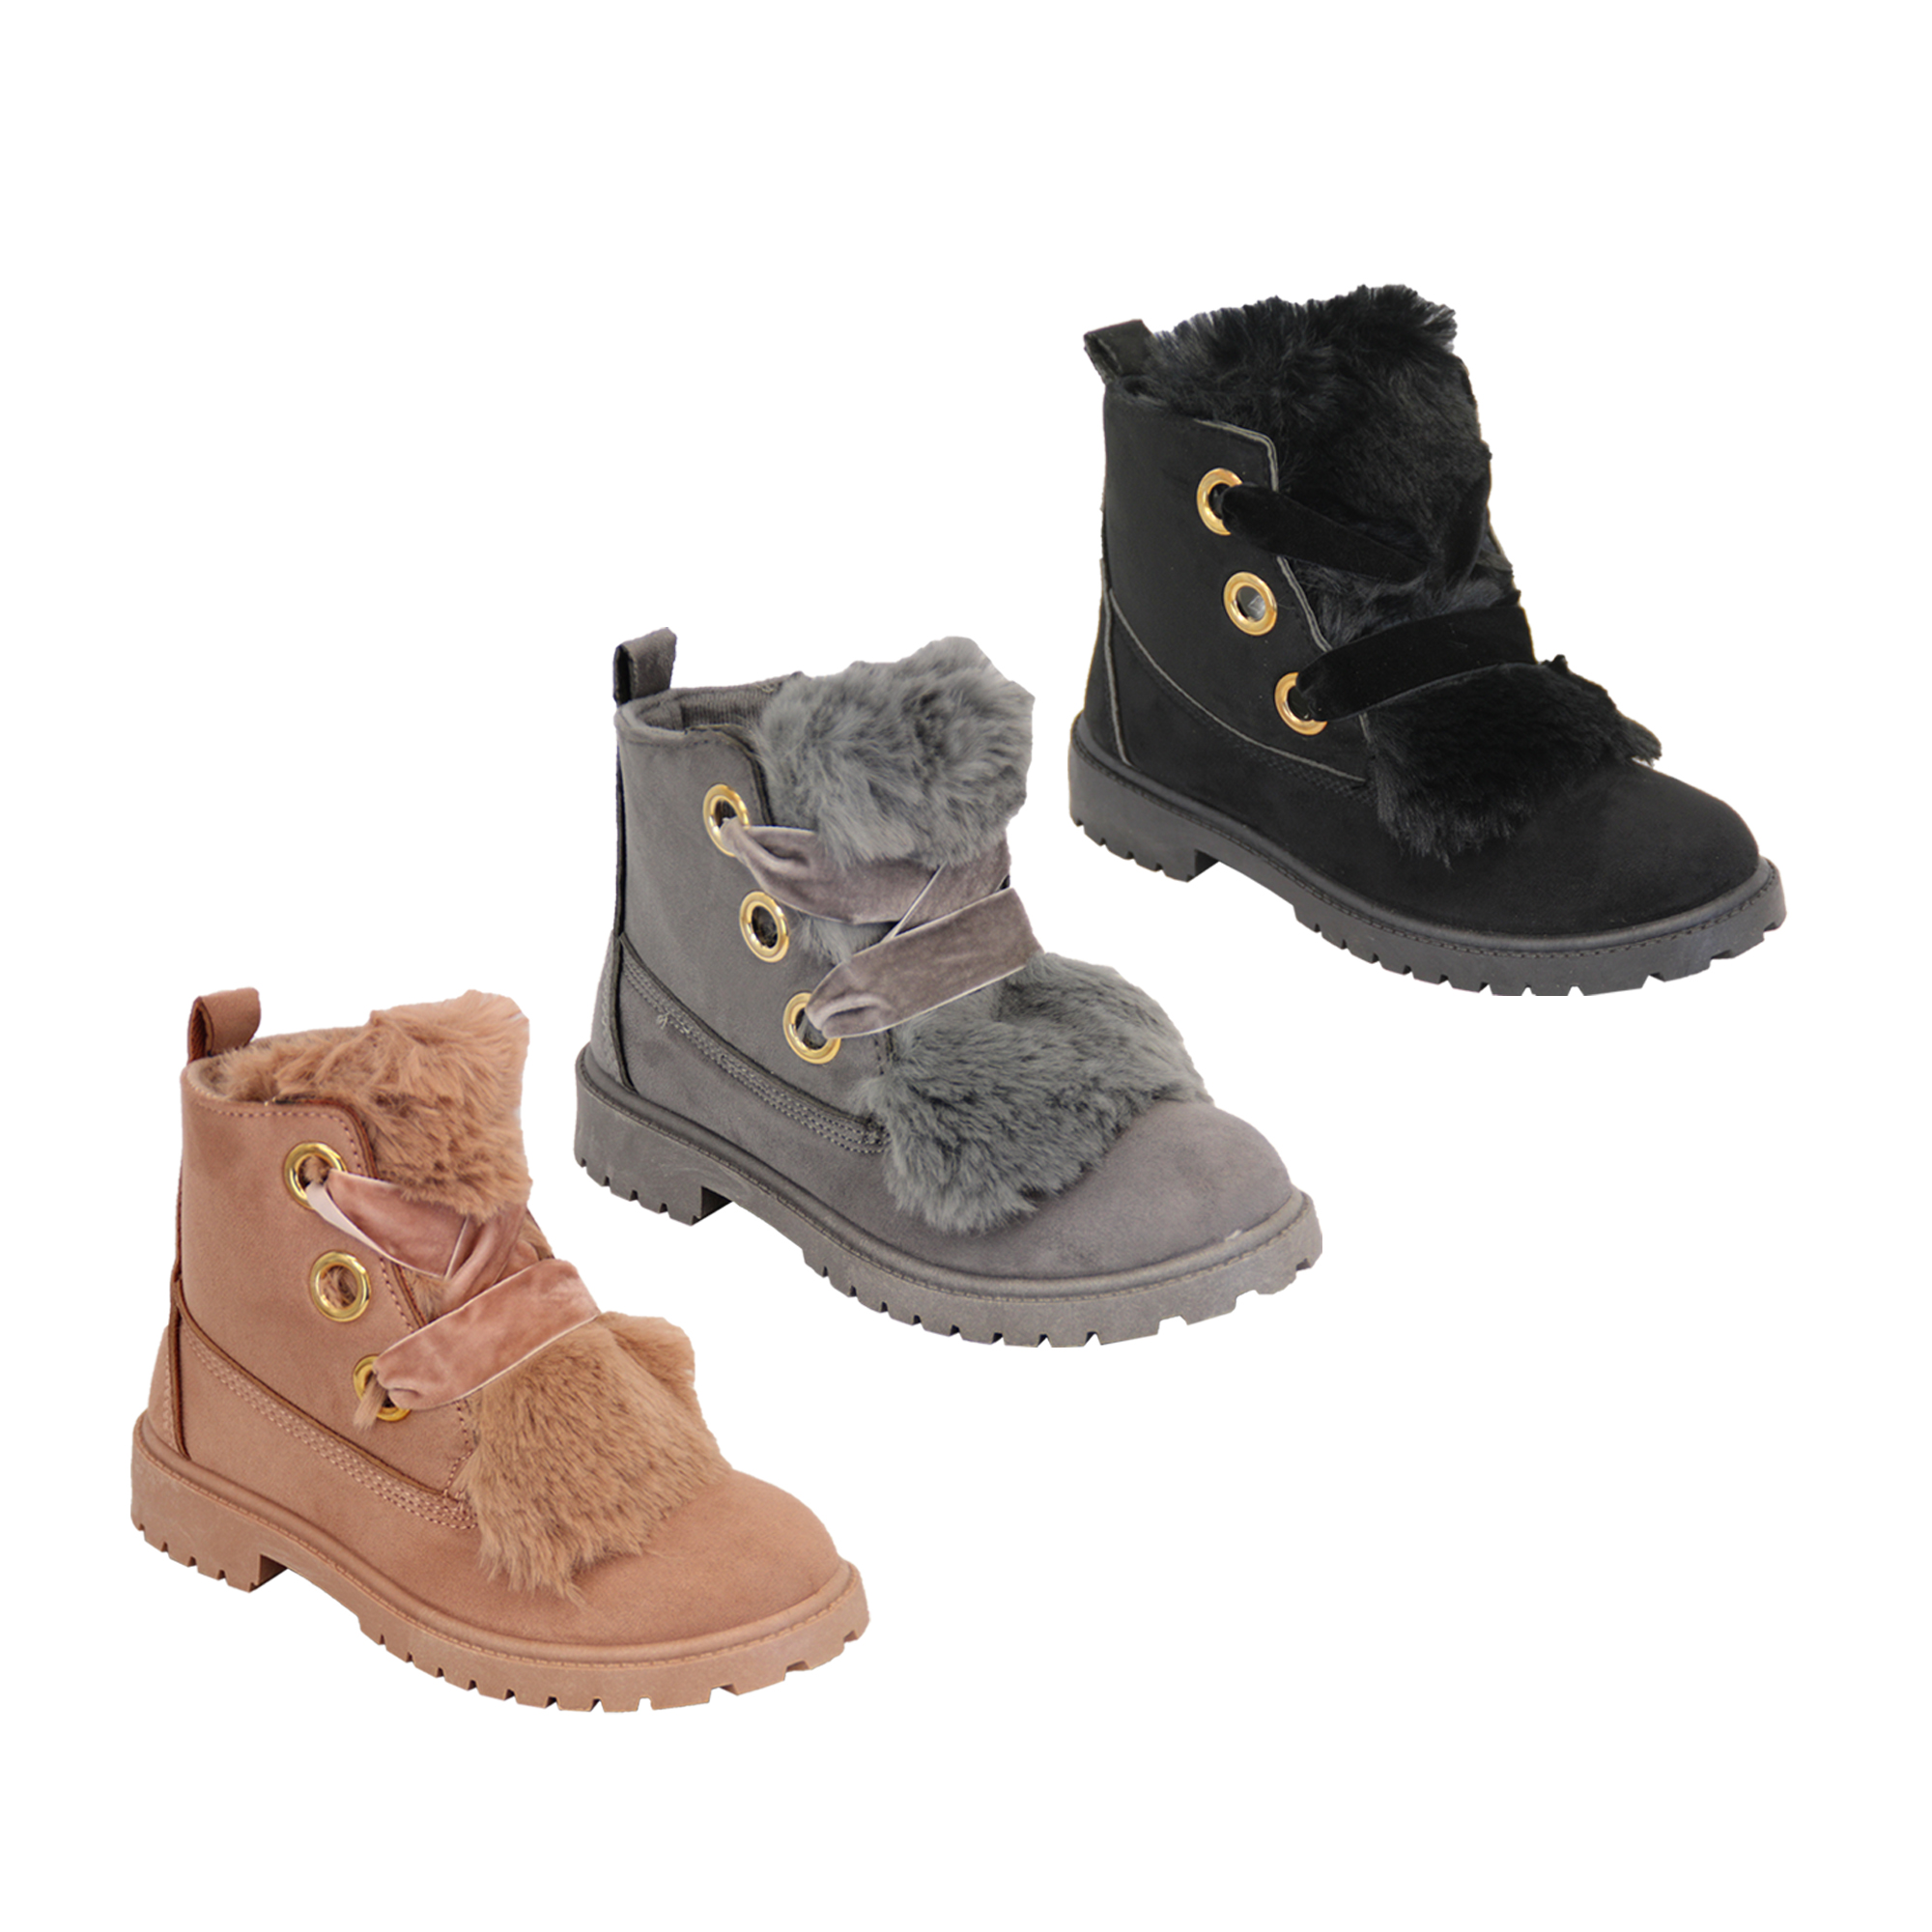 Details about Girls Suede Look Boots Toddlers Fluffy Fur Low Heel Lace Up  Ankle Shoes Winter